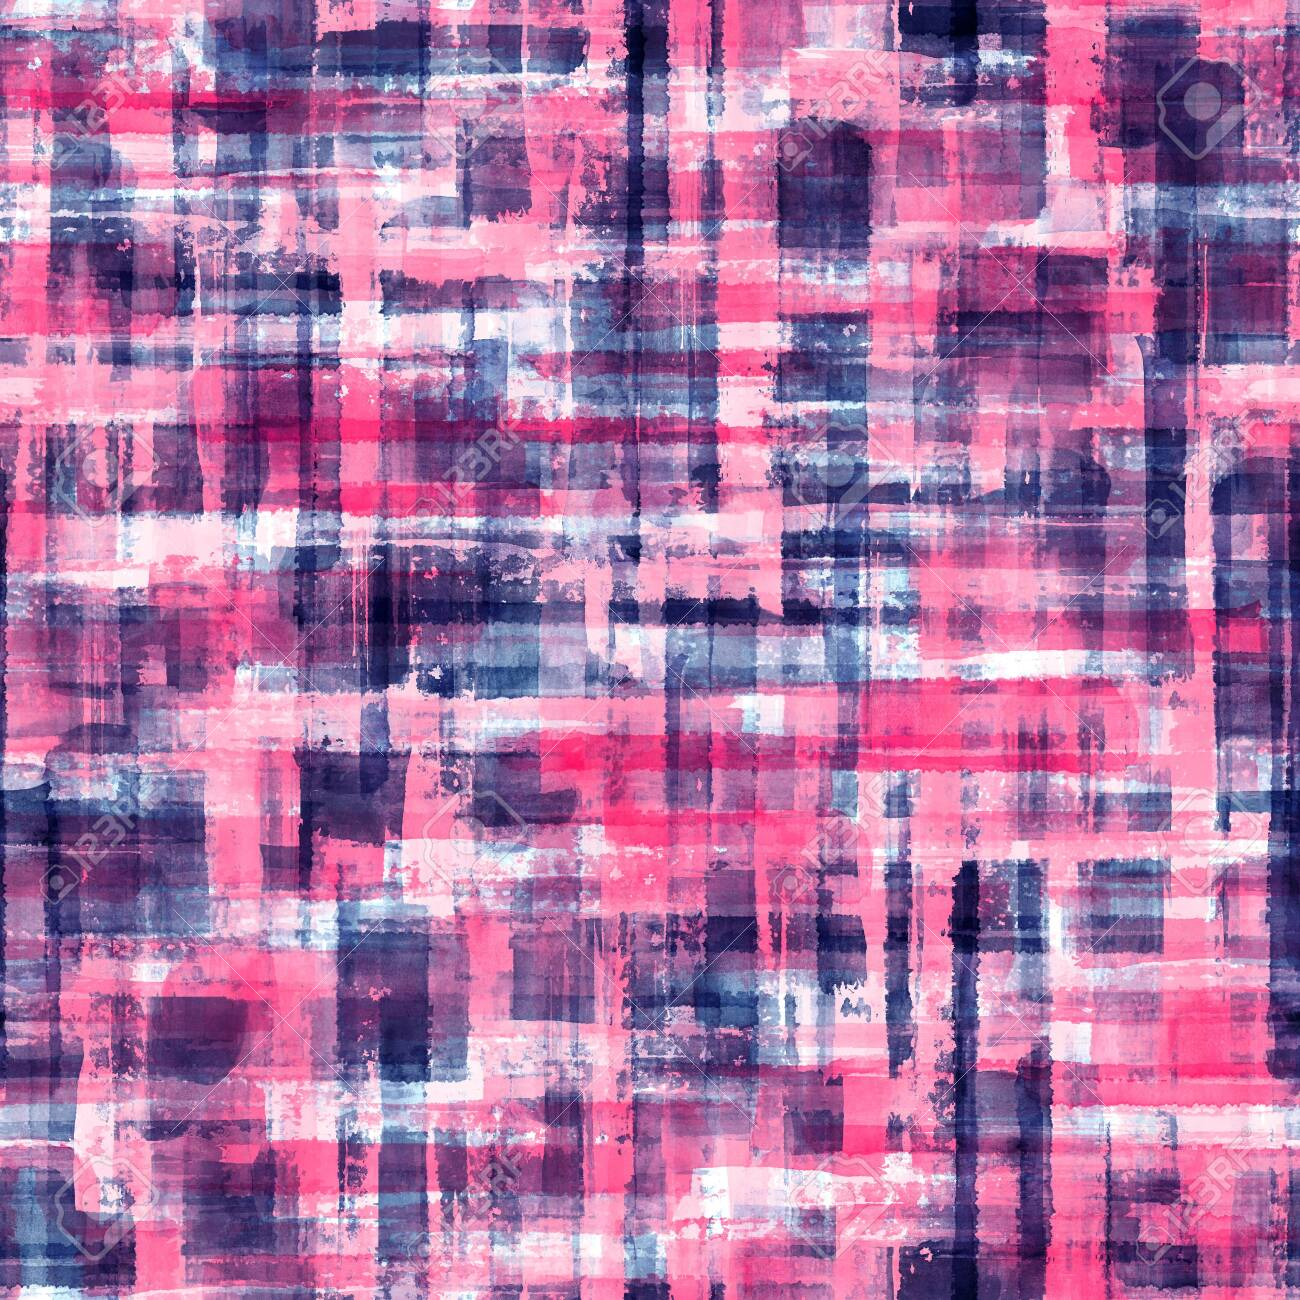 Abstract grunge cross geometric shapes contemporary art multicolor seamless pattern background. Watercolor hand drawn colorful brush strokes texture. Watercolour print for textile, wallpaper, wrapping - 147939284